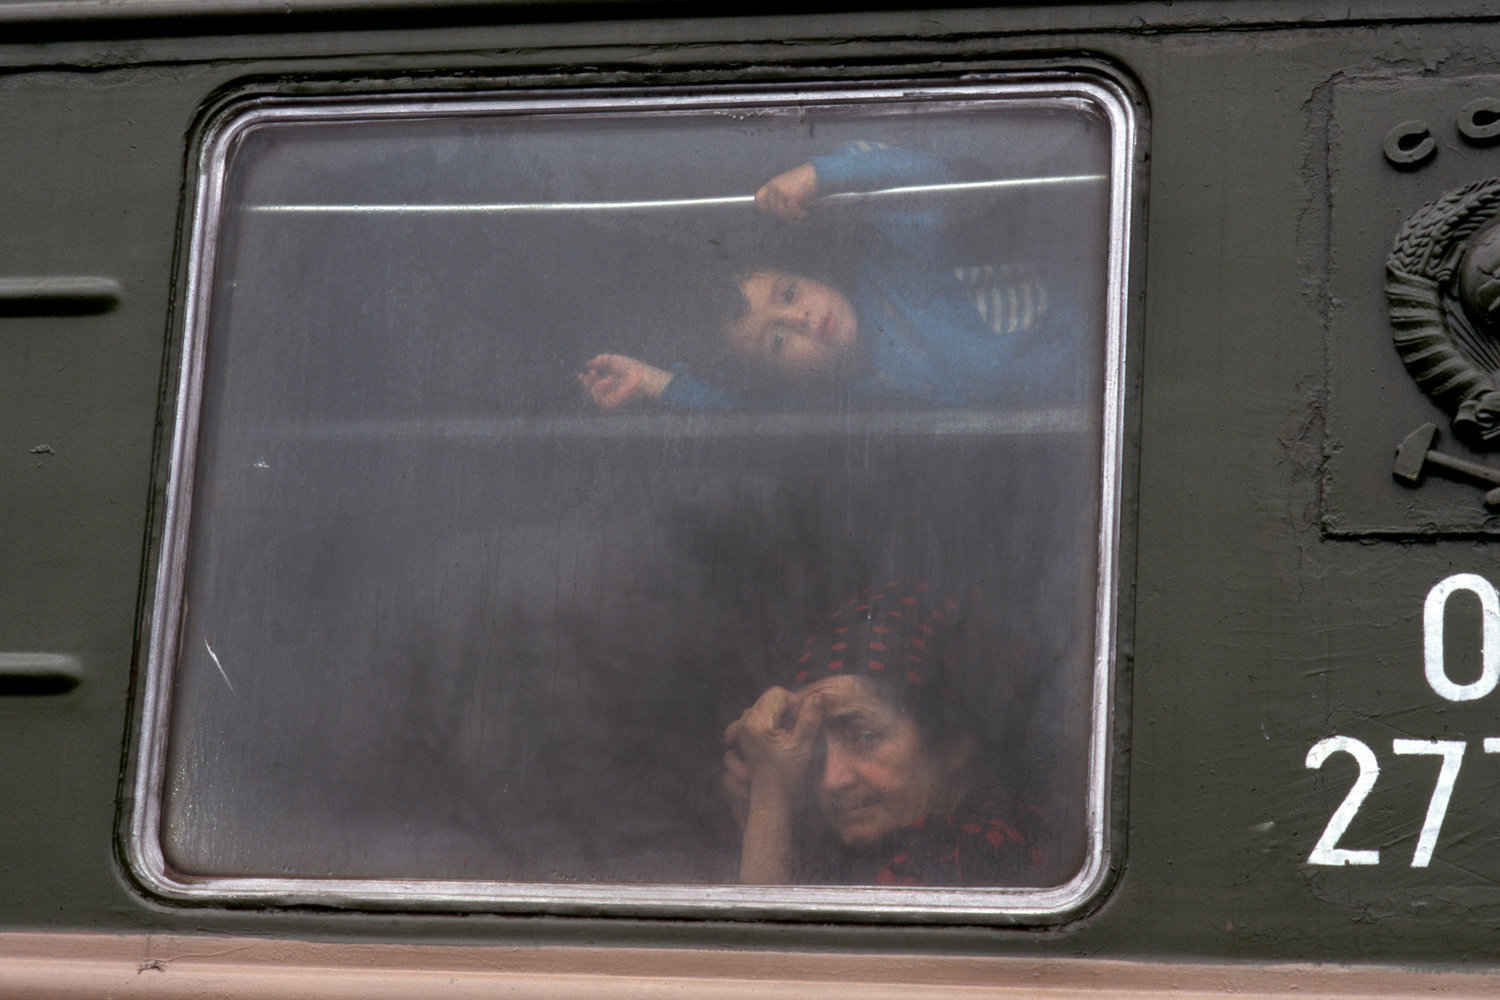 """Chechen refugees. 1994.<span class=""""photo-essays-link""""><span class=""""separator"""">・</span><a href=""""/photo-essays"""">Photo-essays</a></span>"""